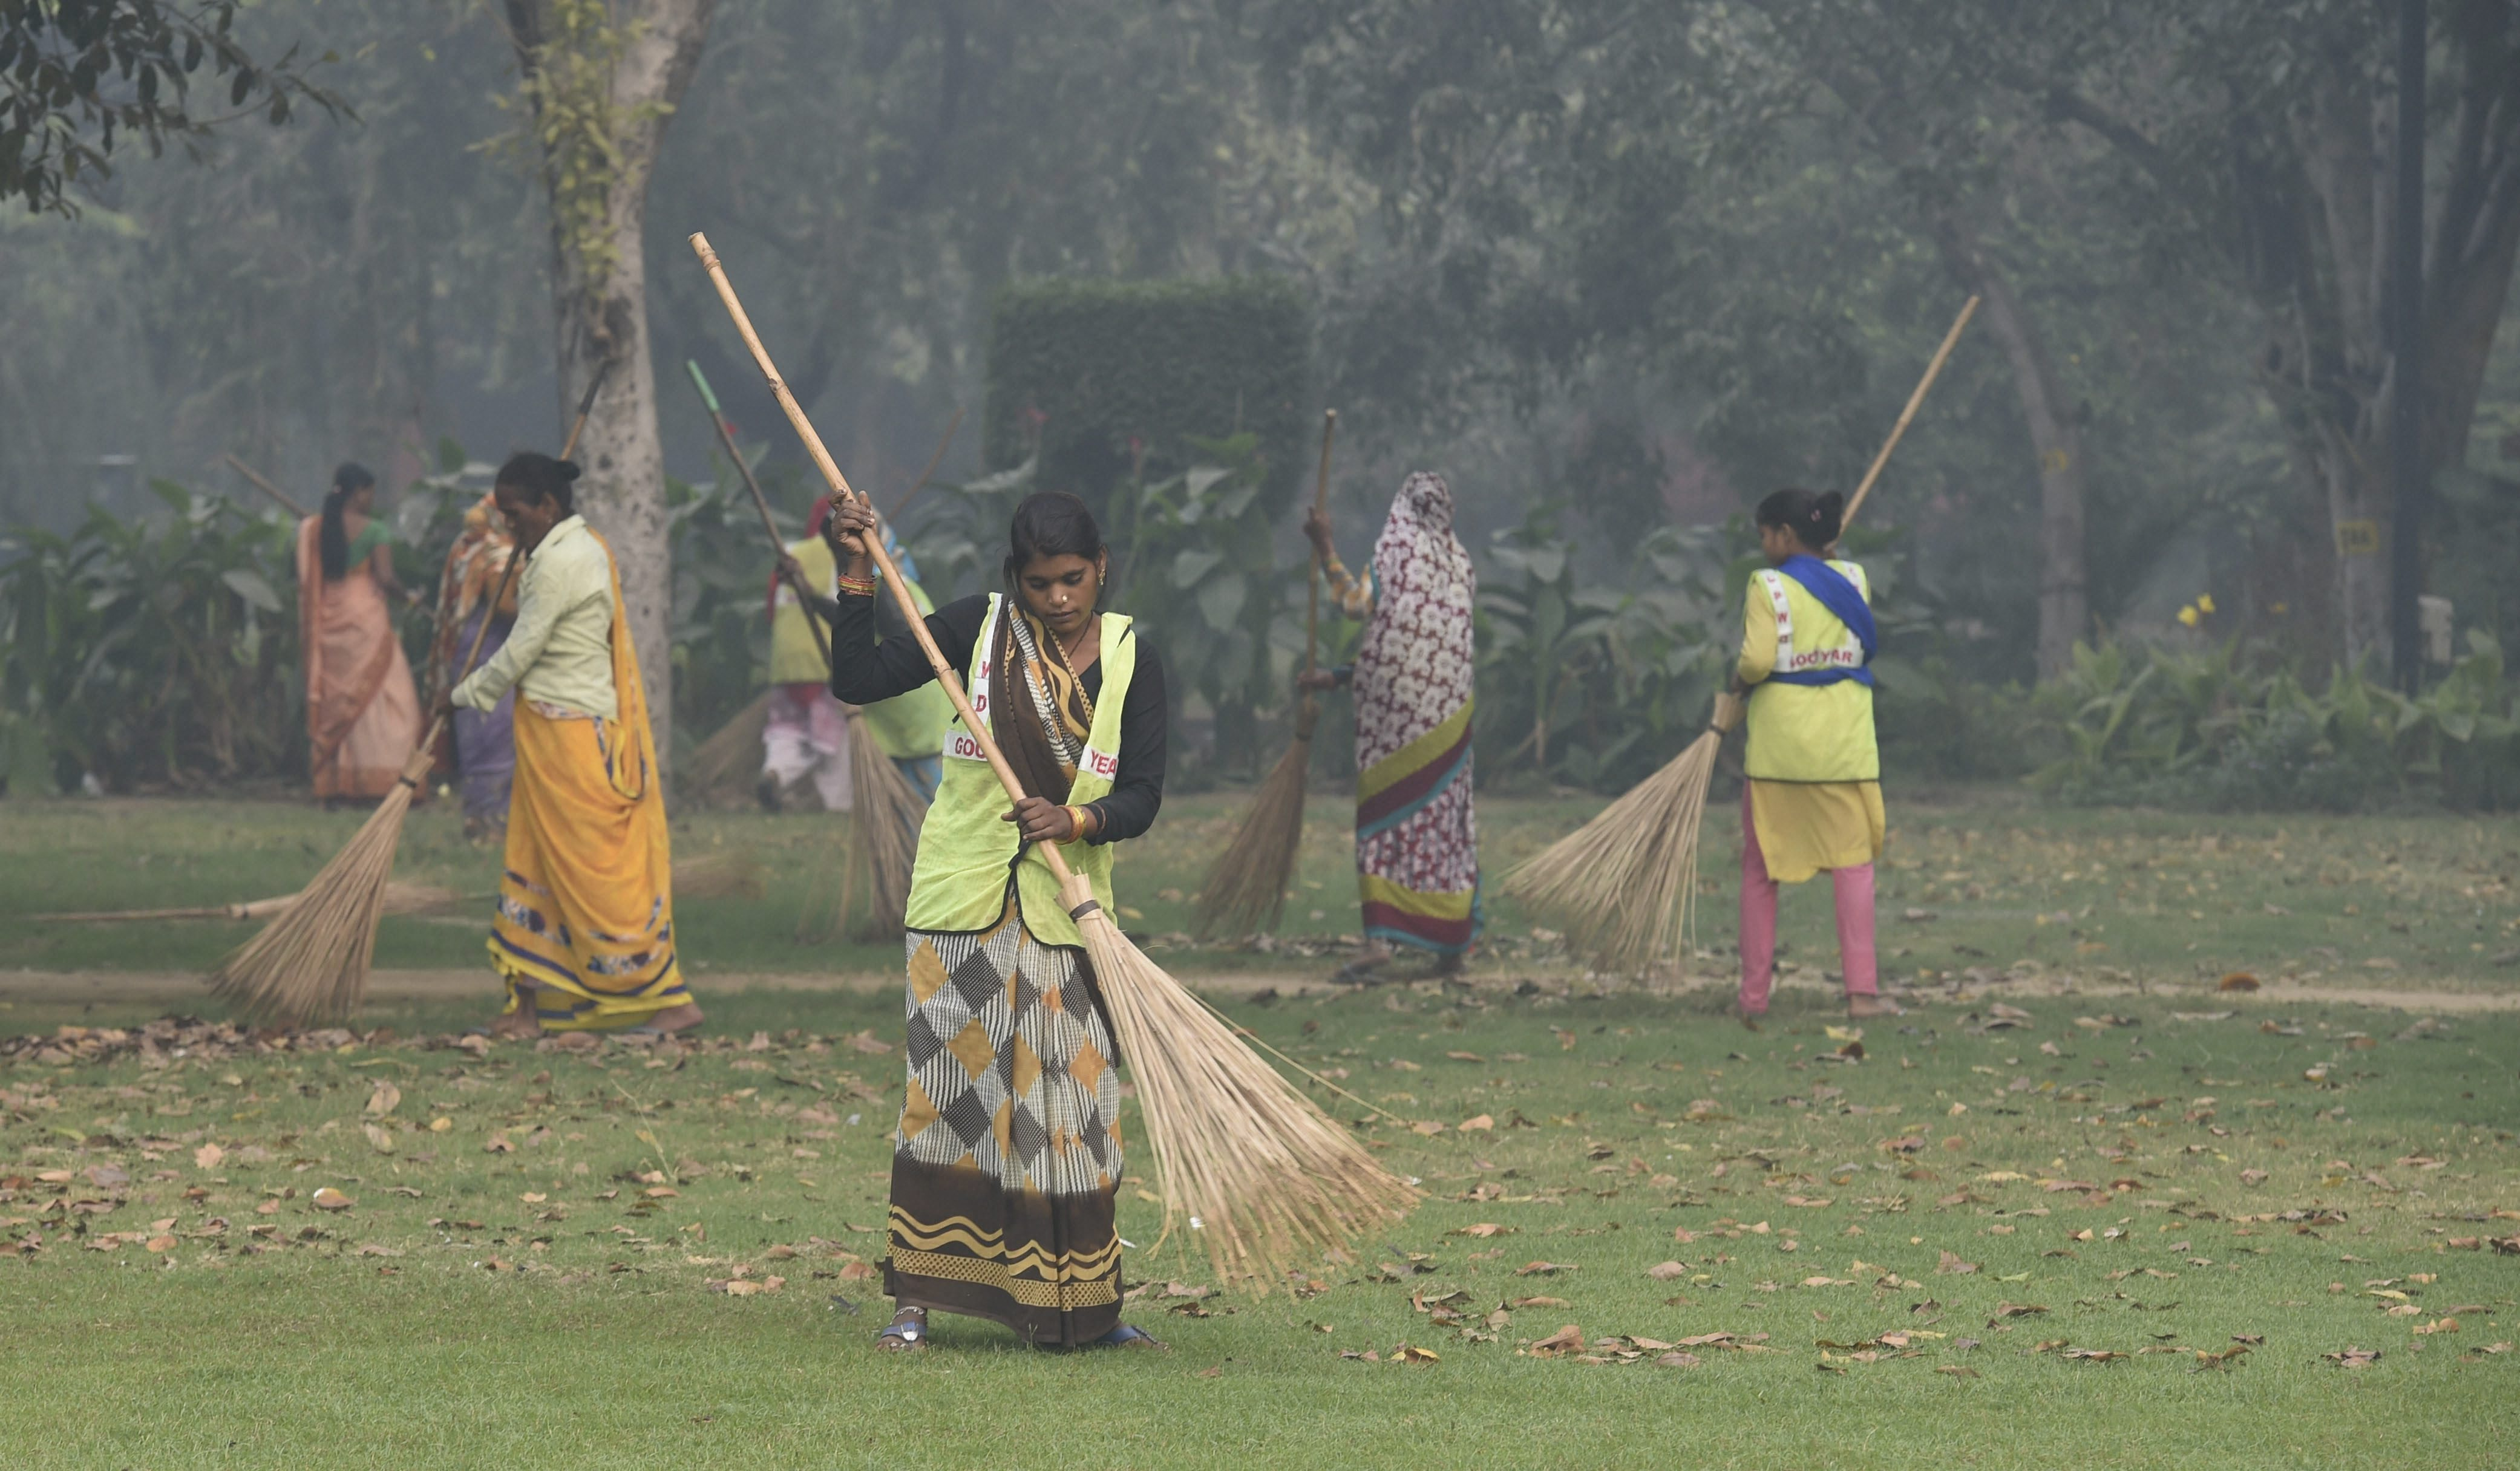 Central Public Works Department workers sweep the grounds at India Gate in Delhi on Monday, November 5, two days before Diwali. Government officials attributed the spike in pollution levels to burning of crop stubble in fields in northern India.